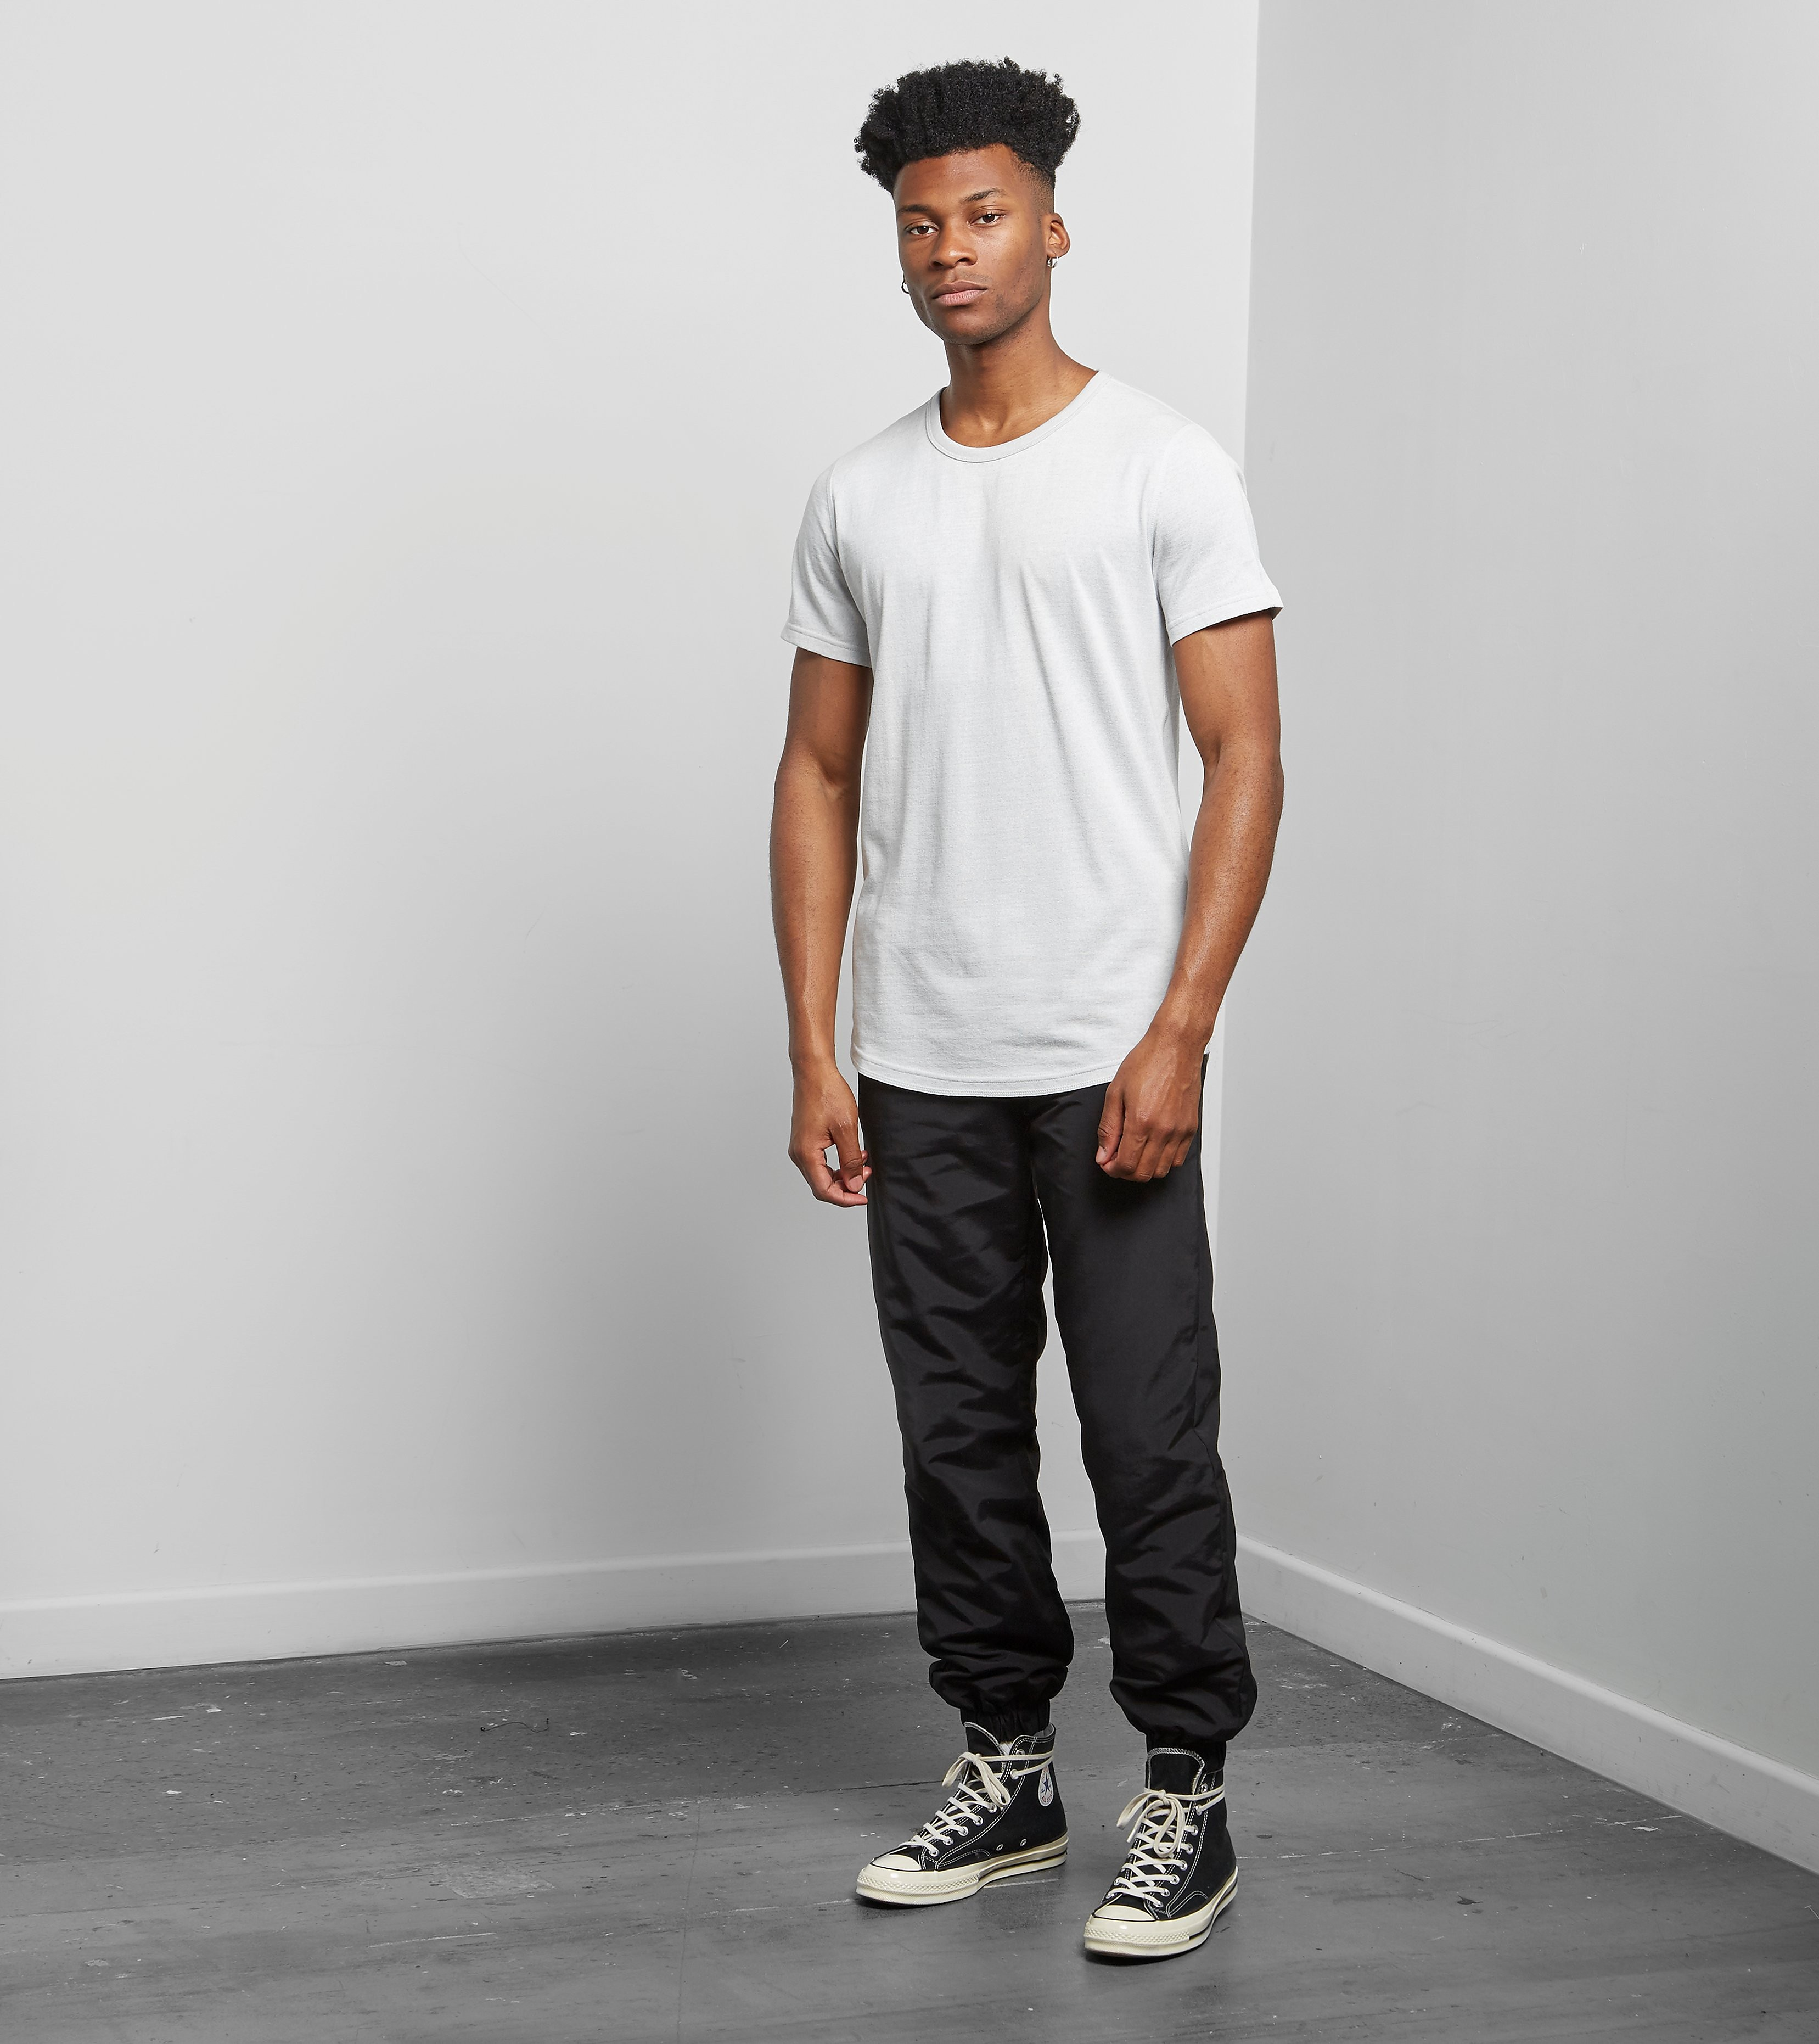 adidas Reigning Champ T-Shirt